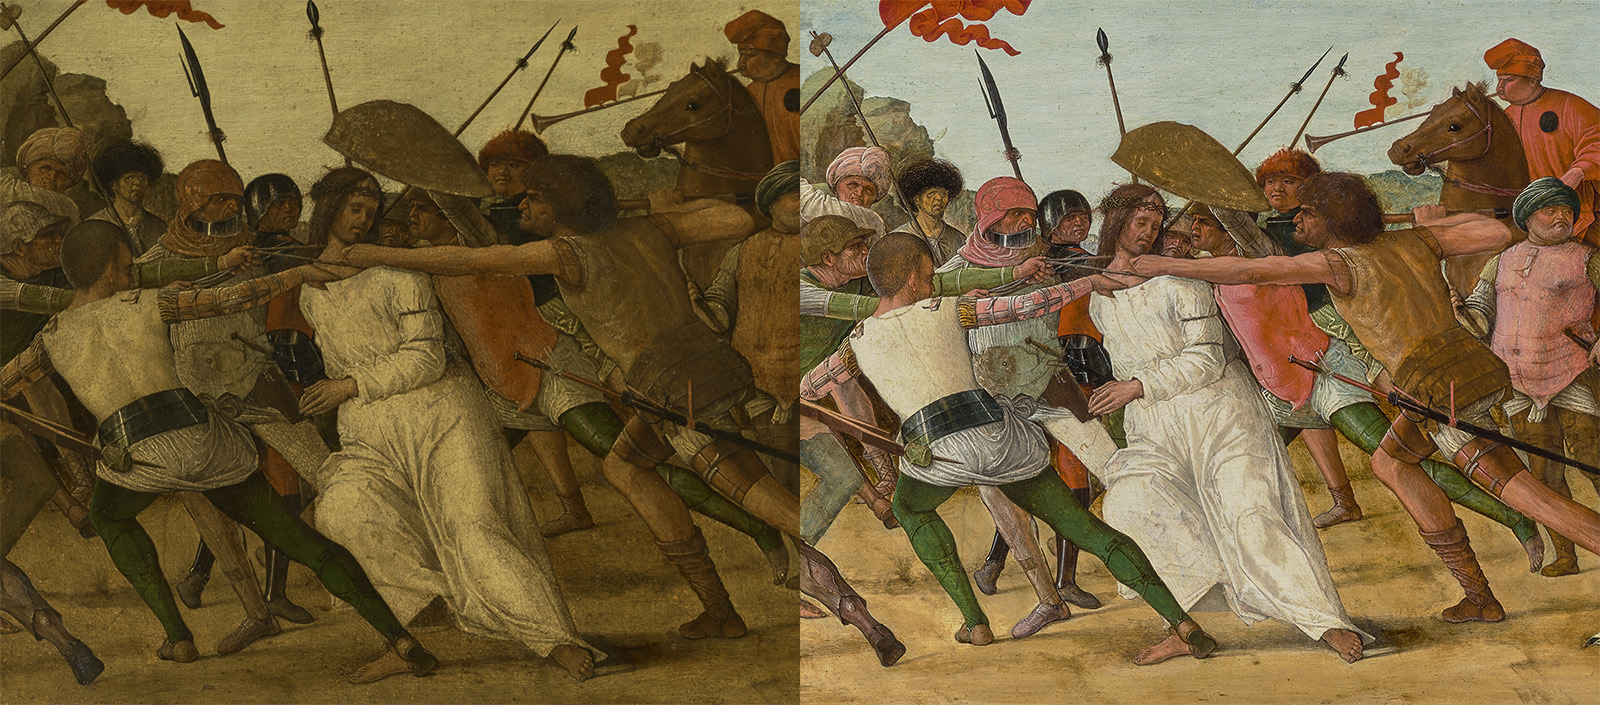 Two views of the same image of a man in a white robe being dragged or pushed by a crowed of men with spears and horses. The left version is much dingier than the right, brighter version.